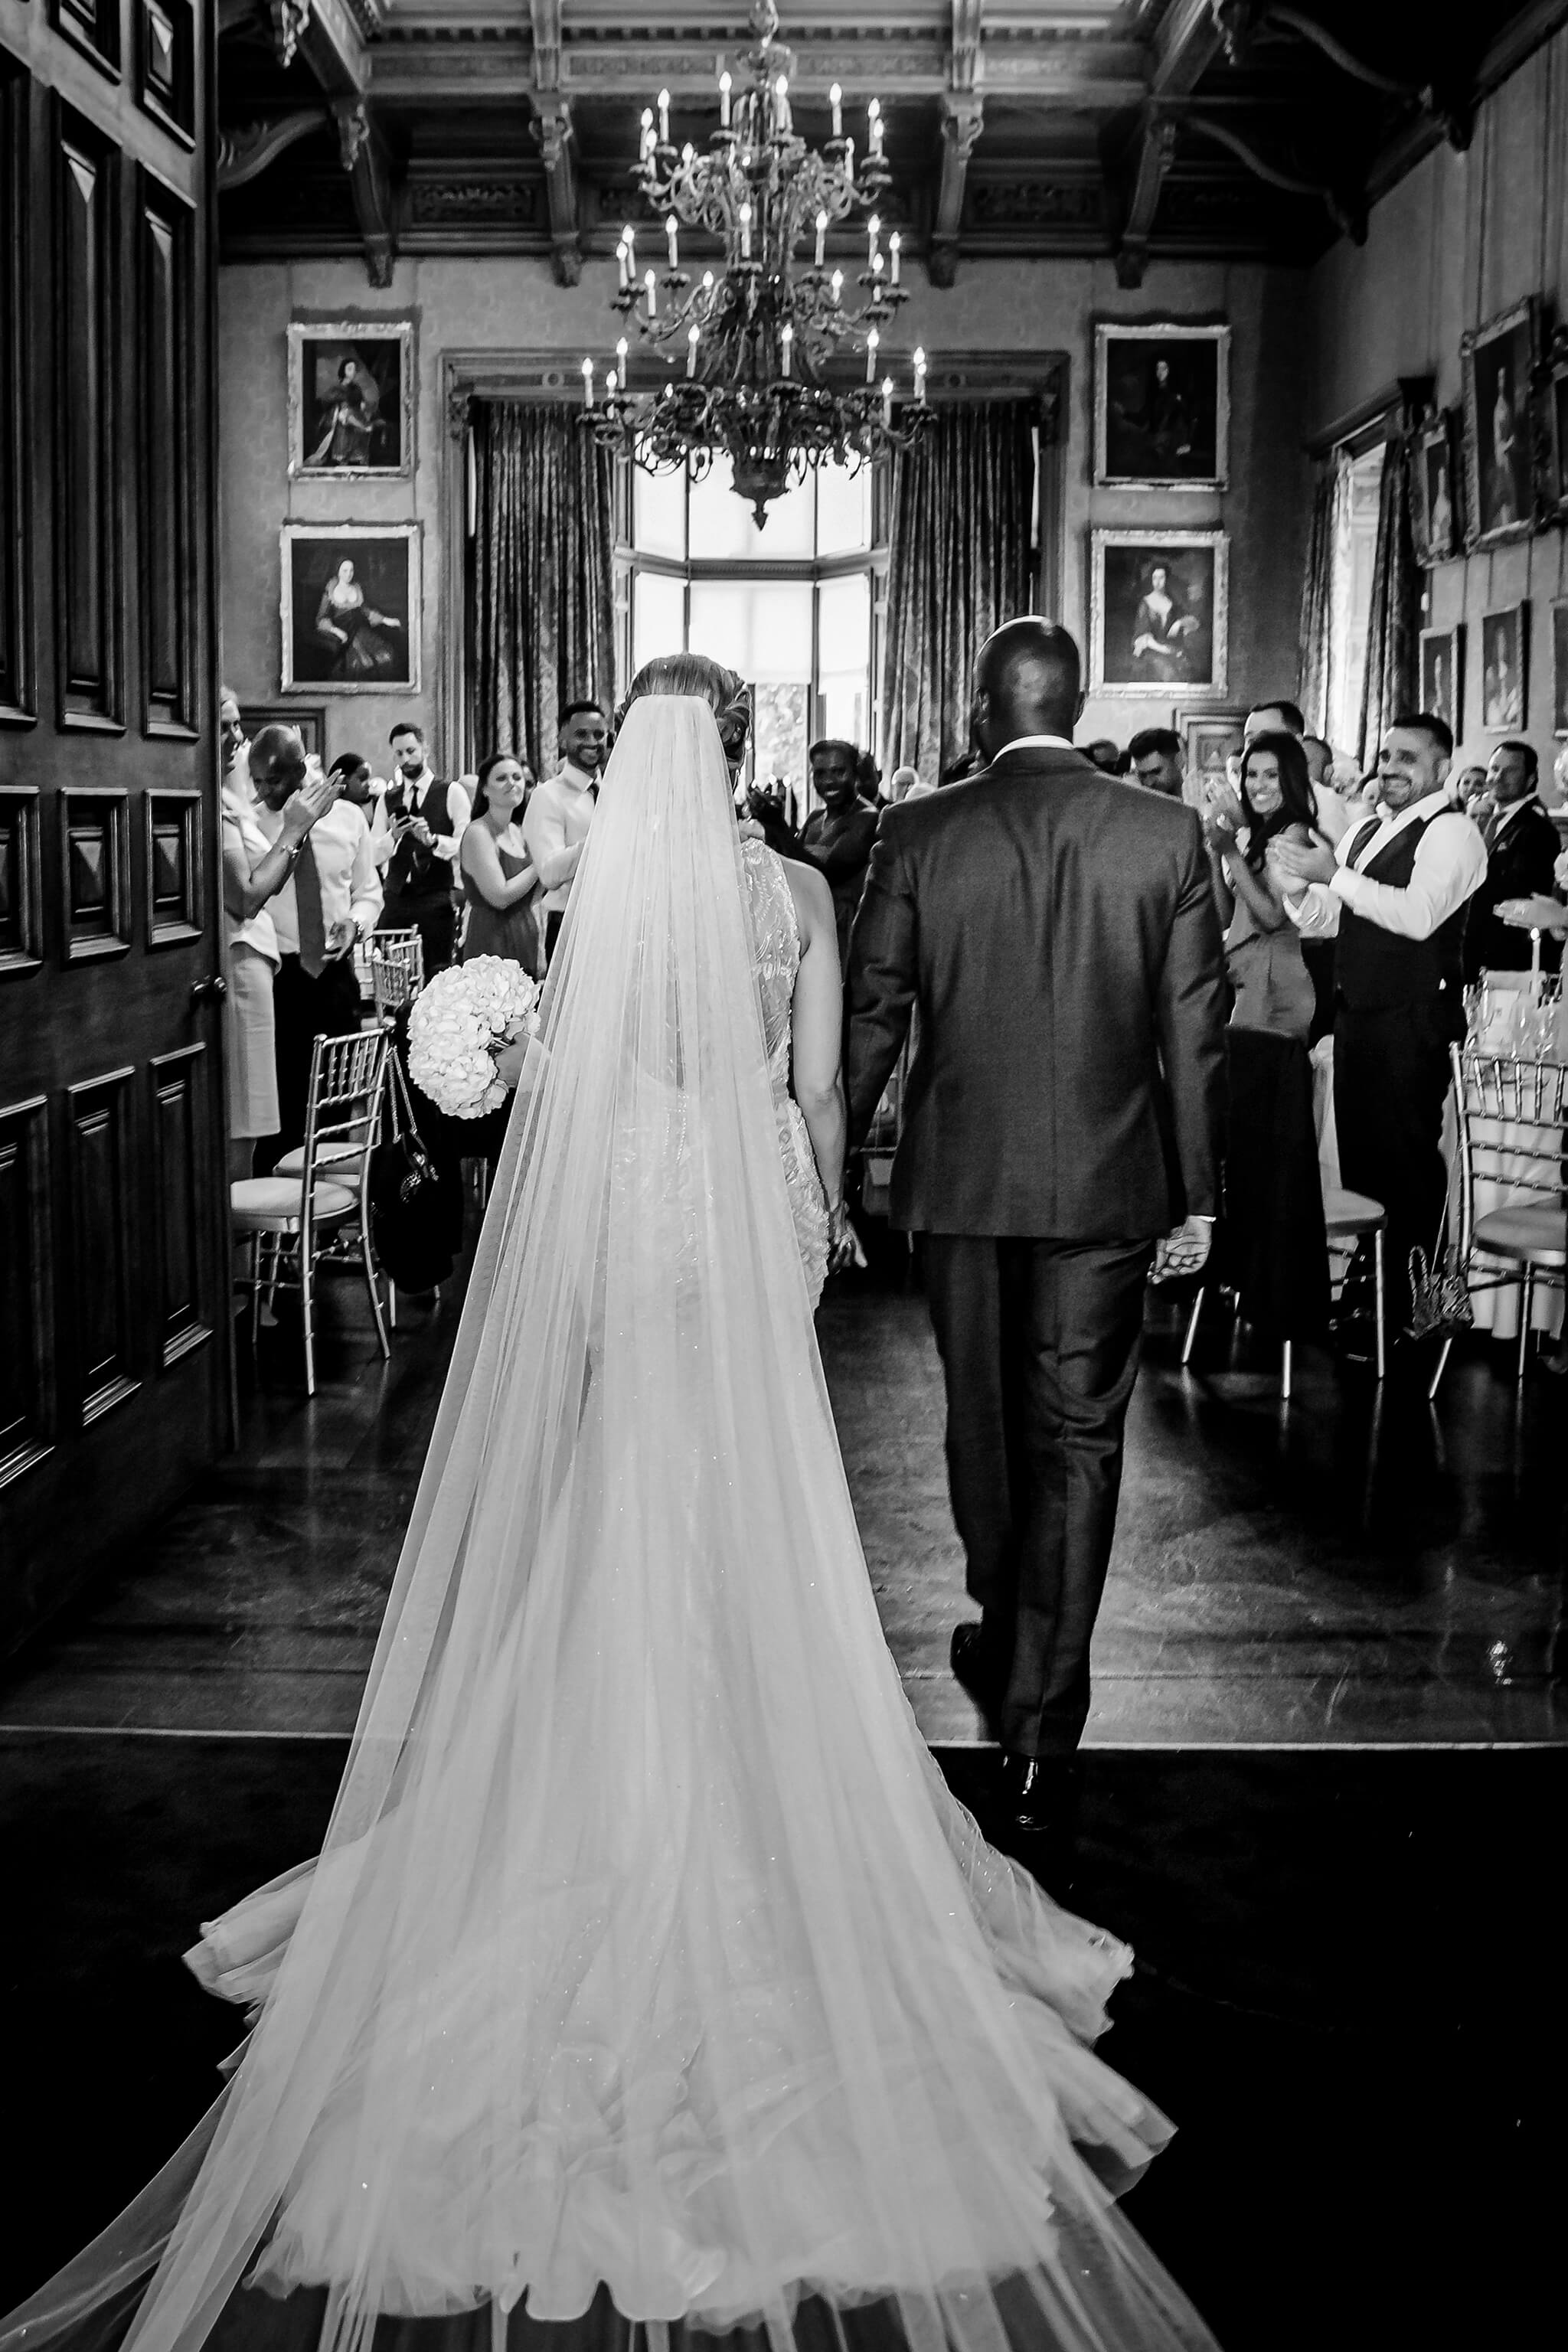 knowsley-hall-wedding-stanbury-photography-029